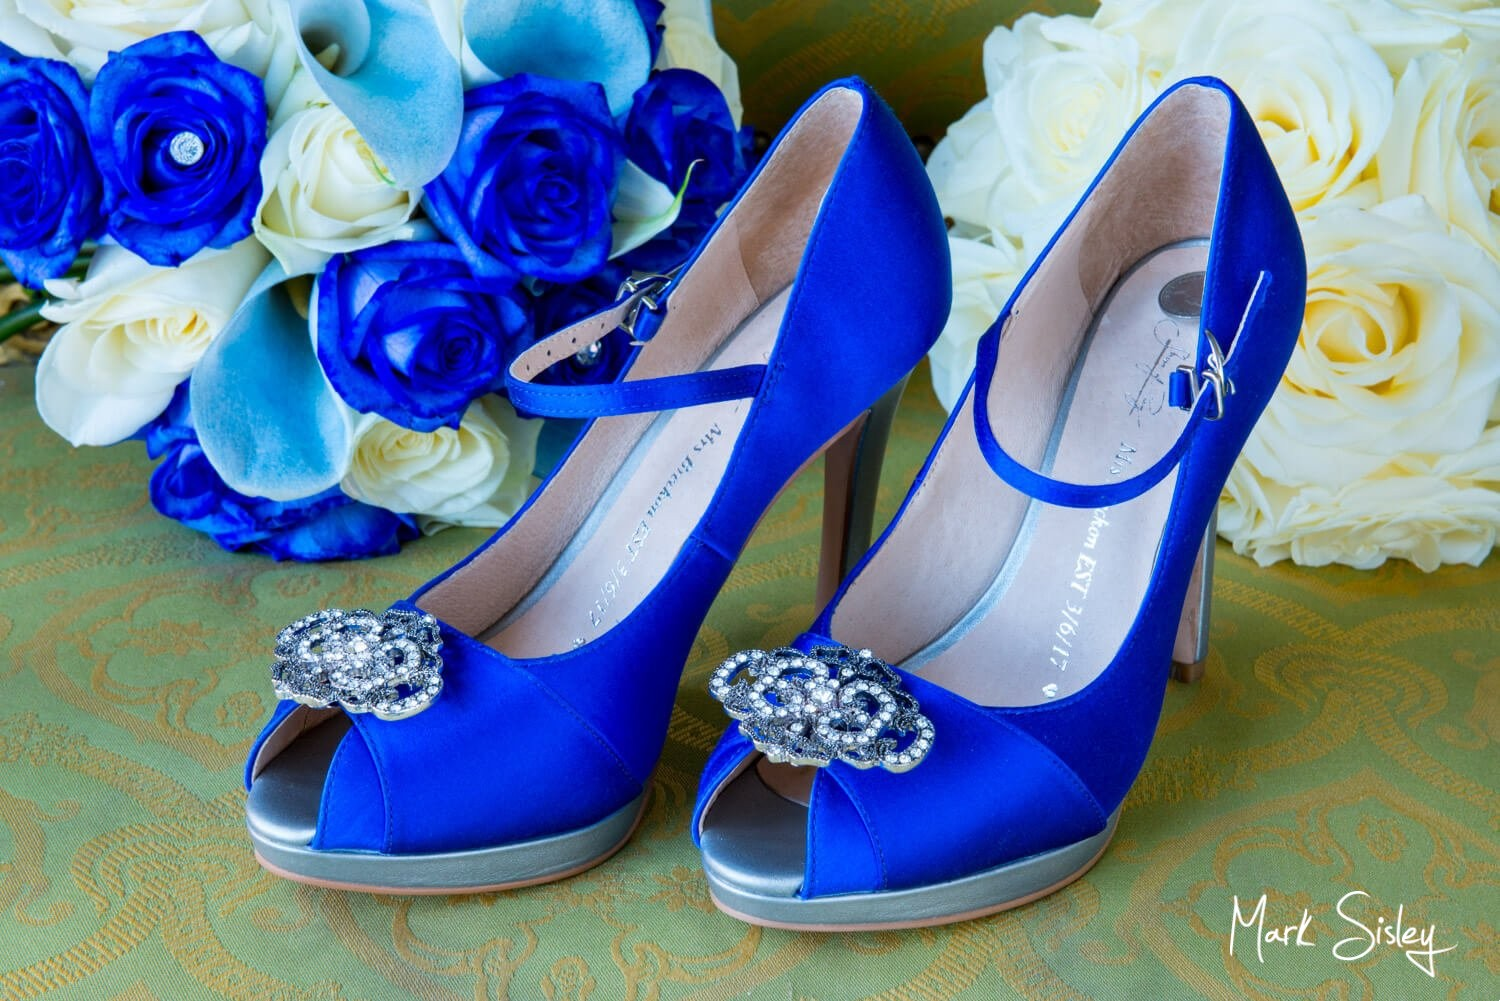 Brocket Hall wedding photography of bridal shoes and flowers